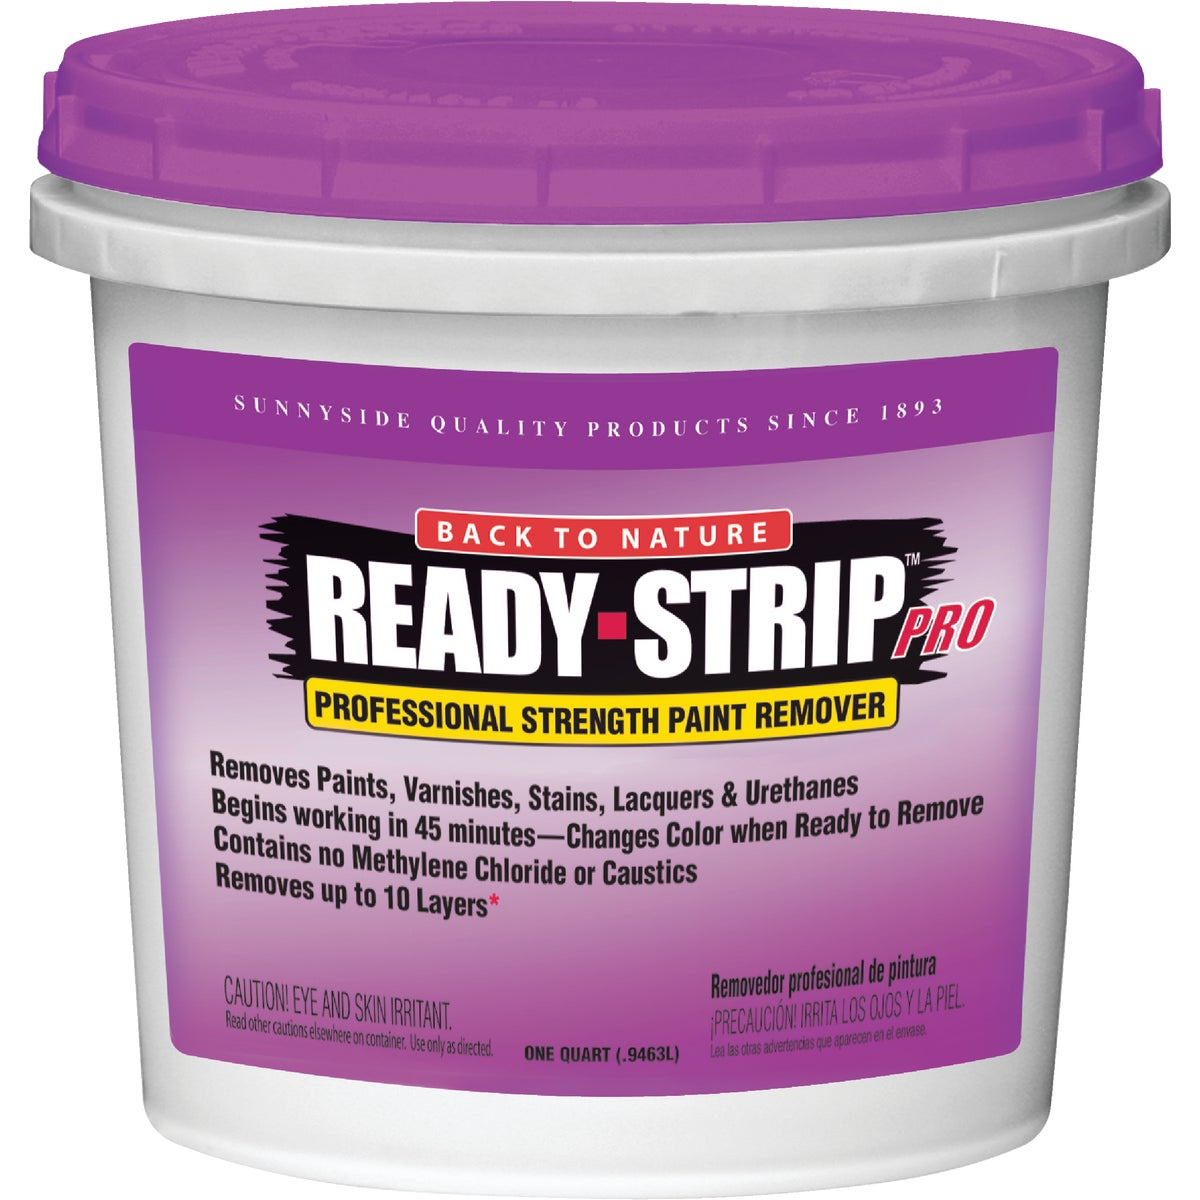 PRO R/S PAINT REMOVER - 66232 by Sunnyside Corp